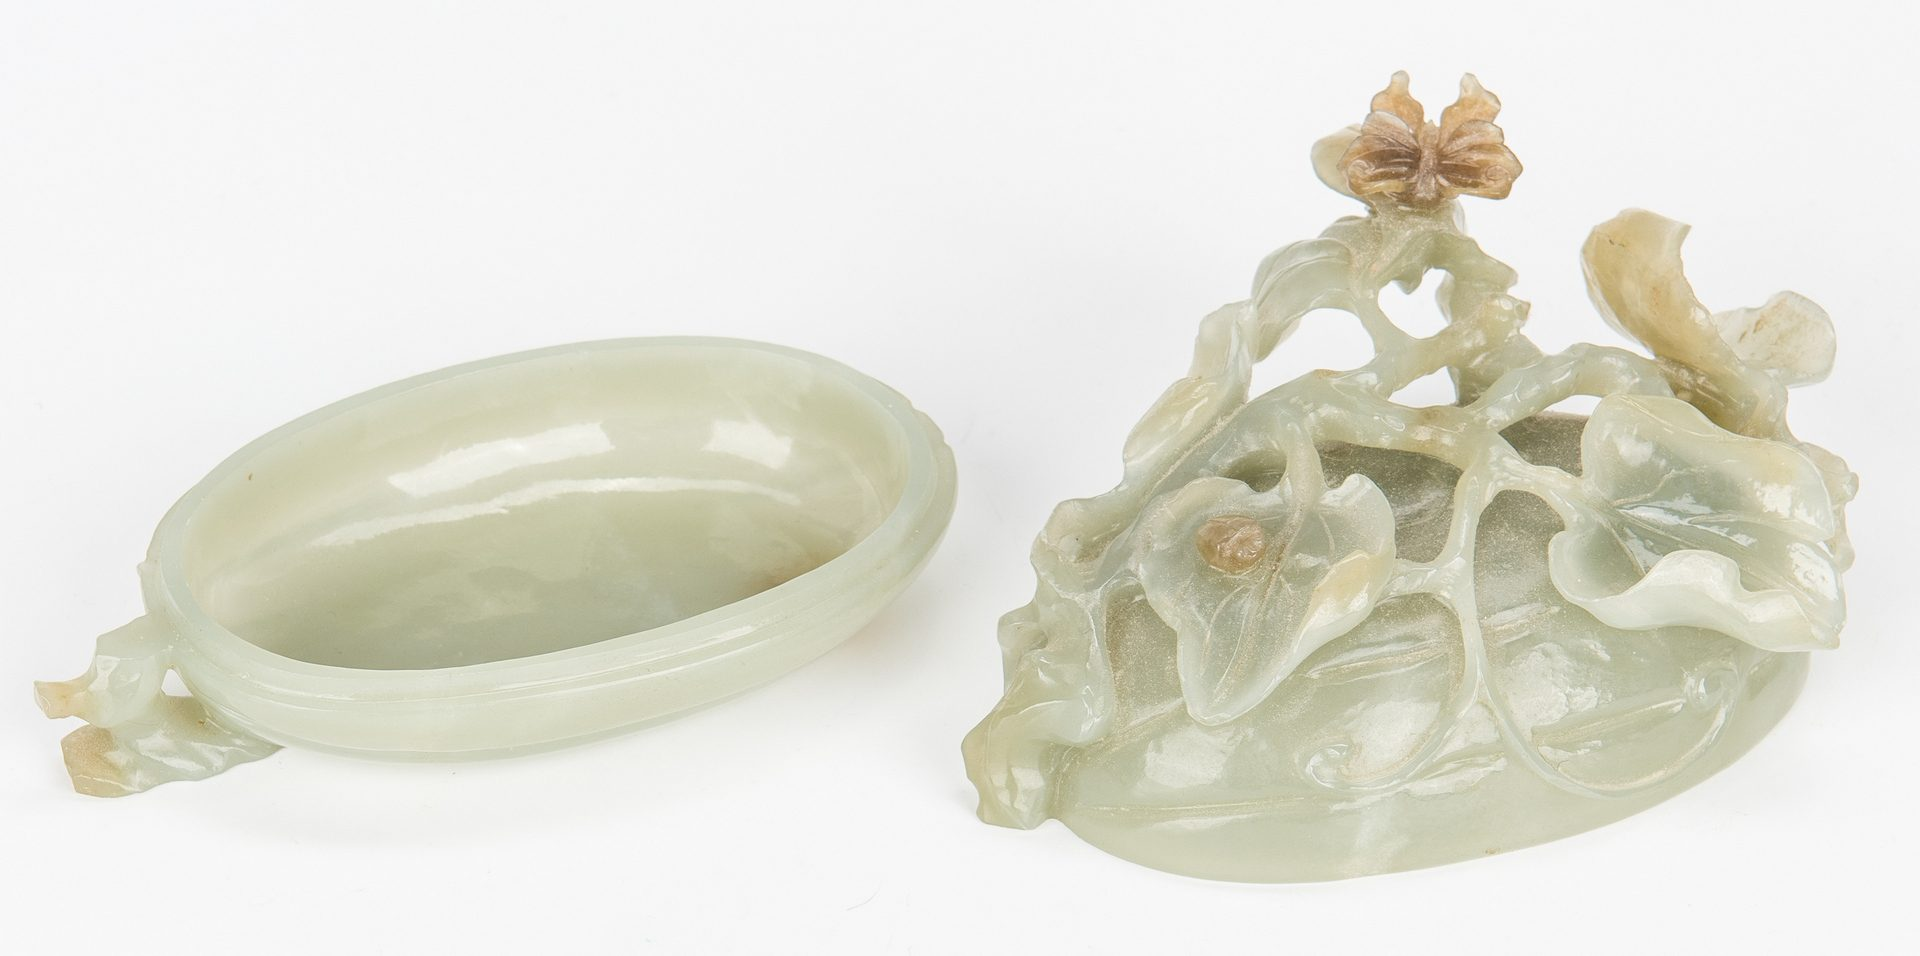 Lot 7: Carved Chinese Jade Melon Box w/ Stand